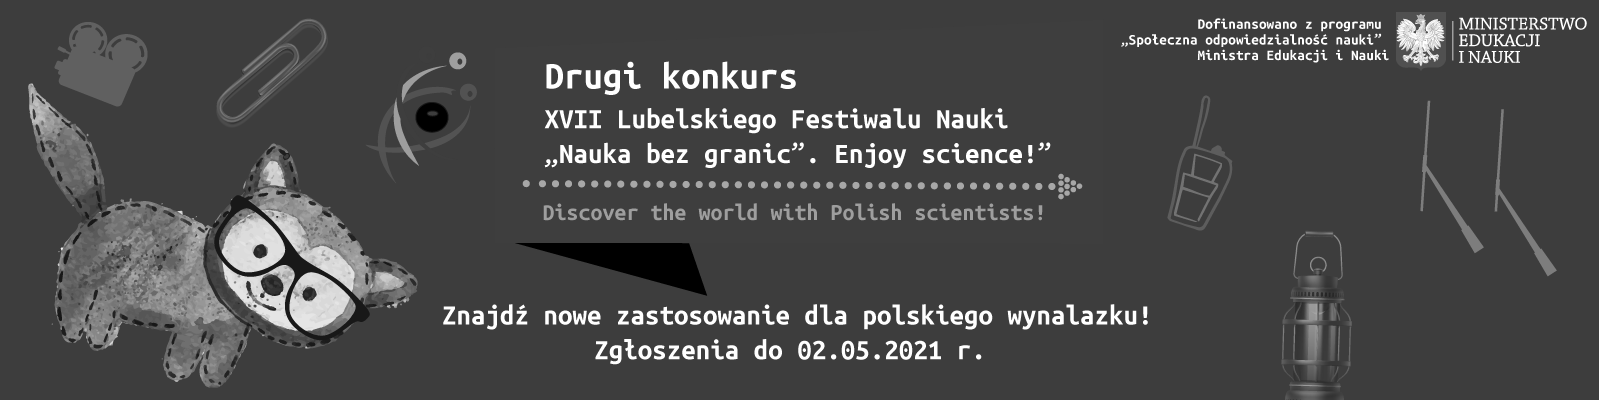 DISCOVER THE WORLD WITH POLISH SCIENTISTS!